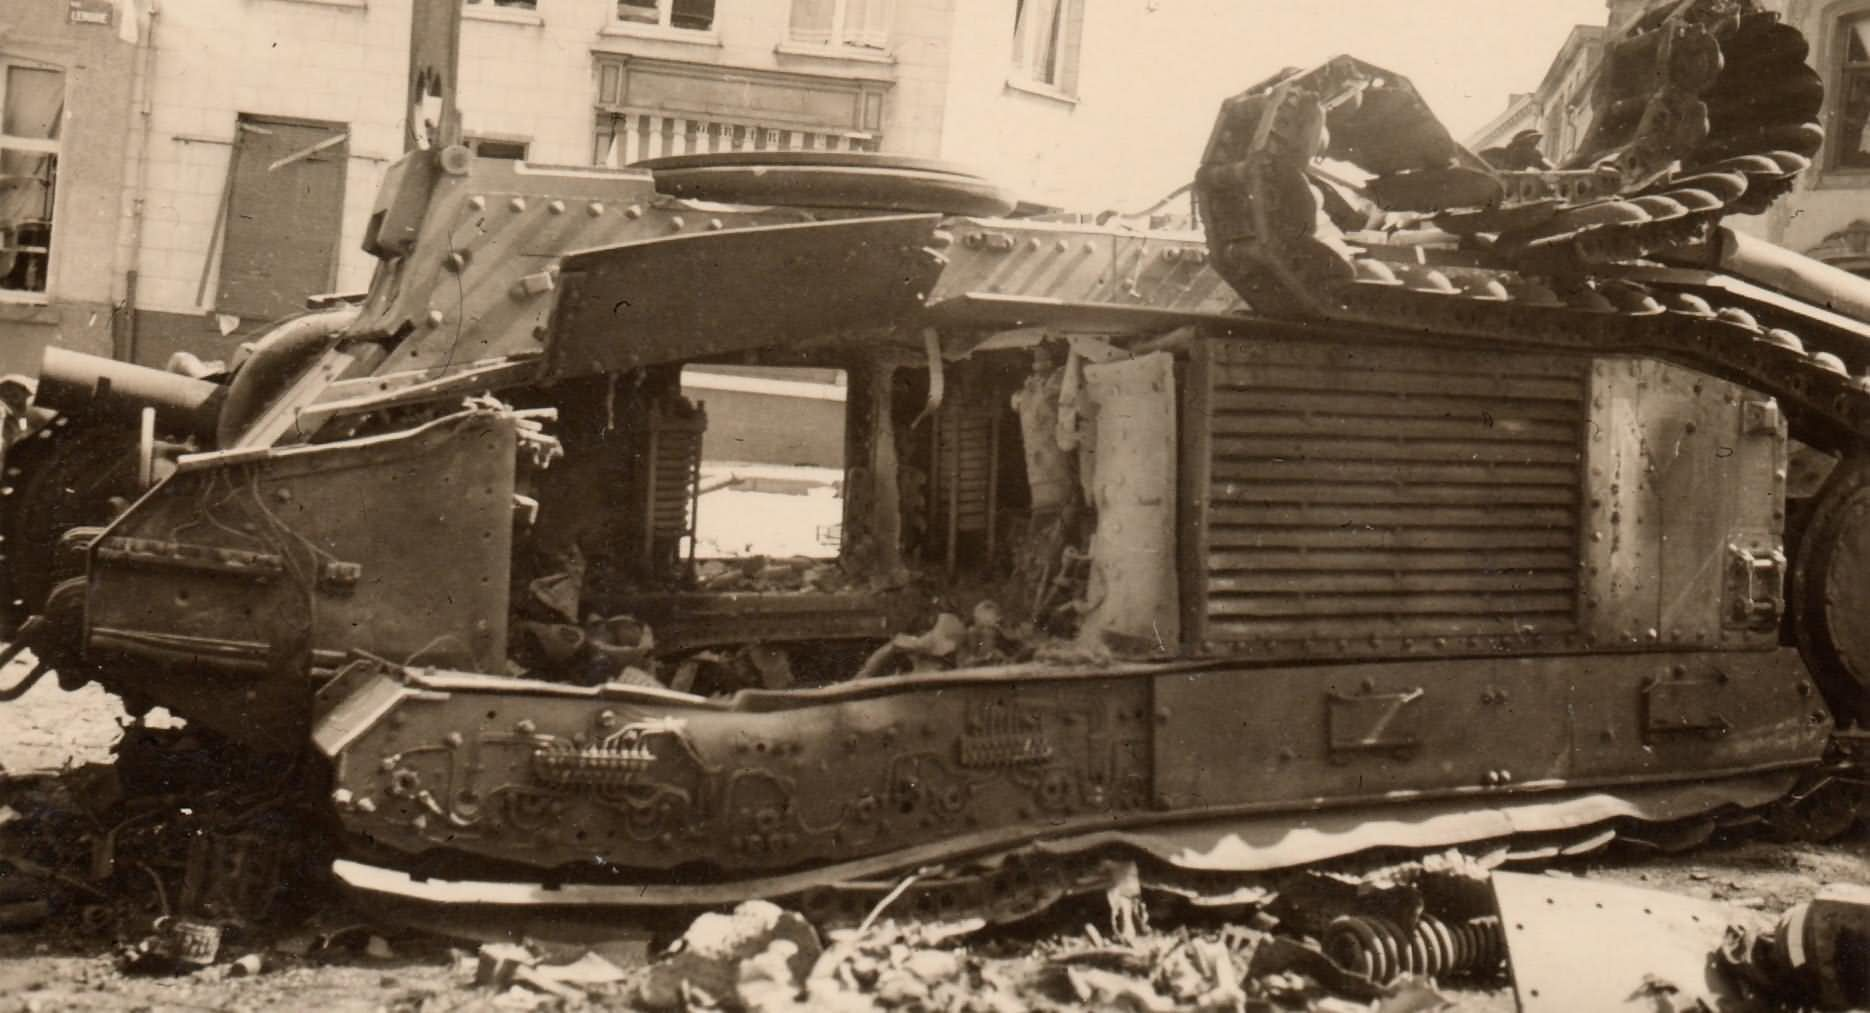 French Char B1 bis tank destroyed 1940